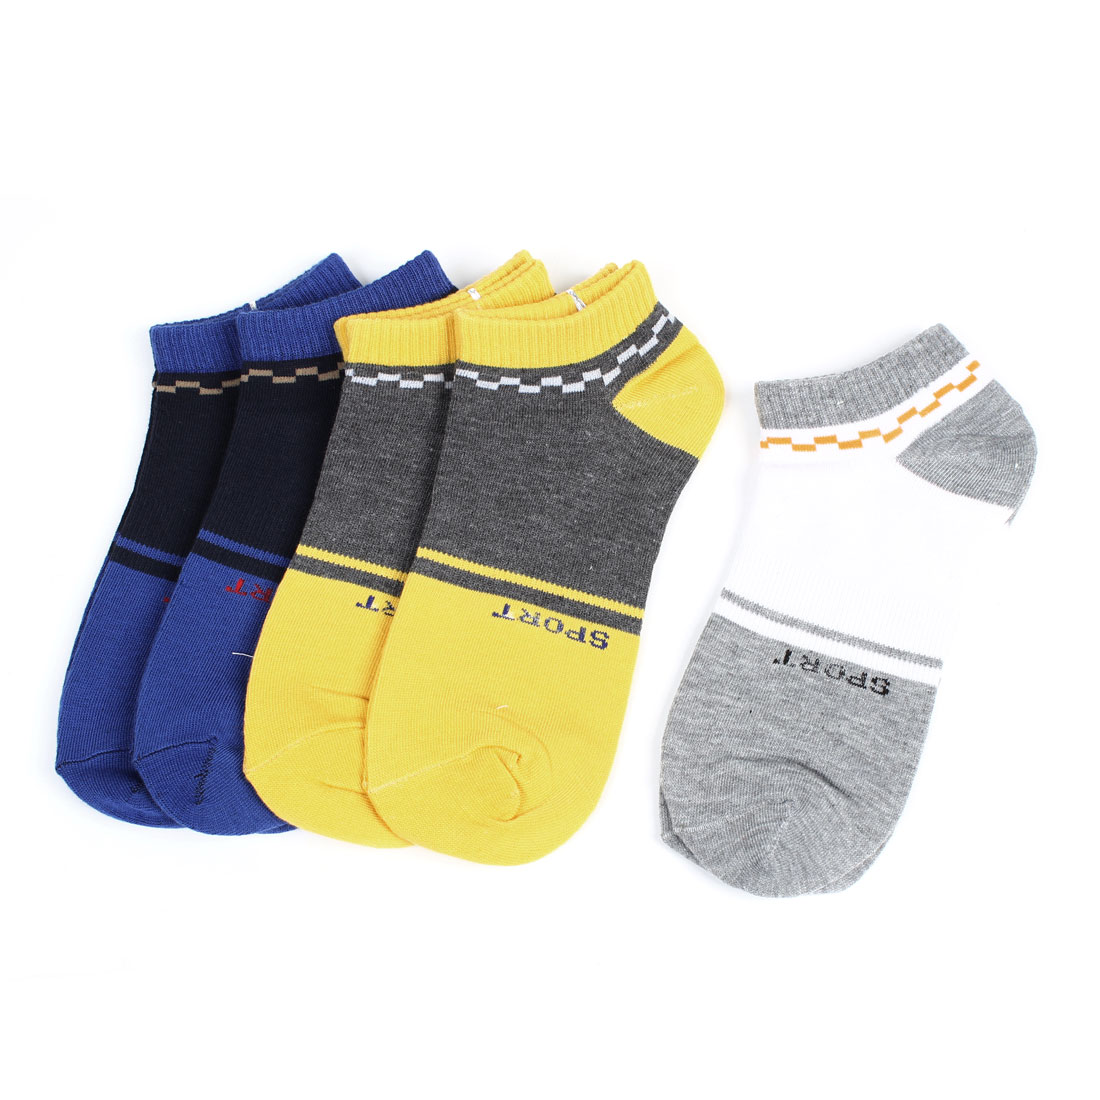 5Pairs Navy Blue Gray White Elastic Cuff Letter Pattern Sports Ankle Socks for Men